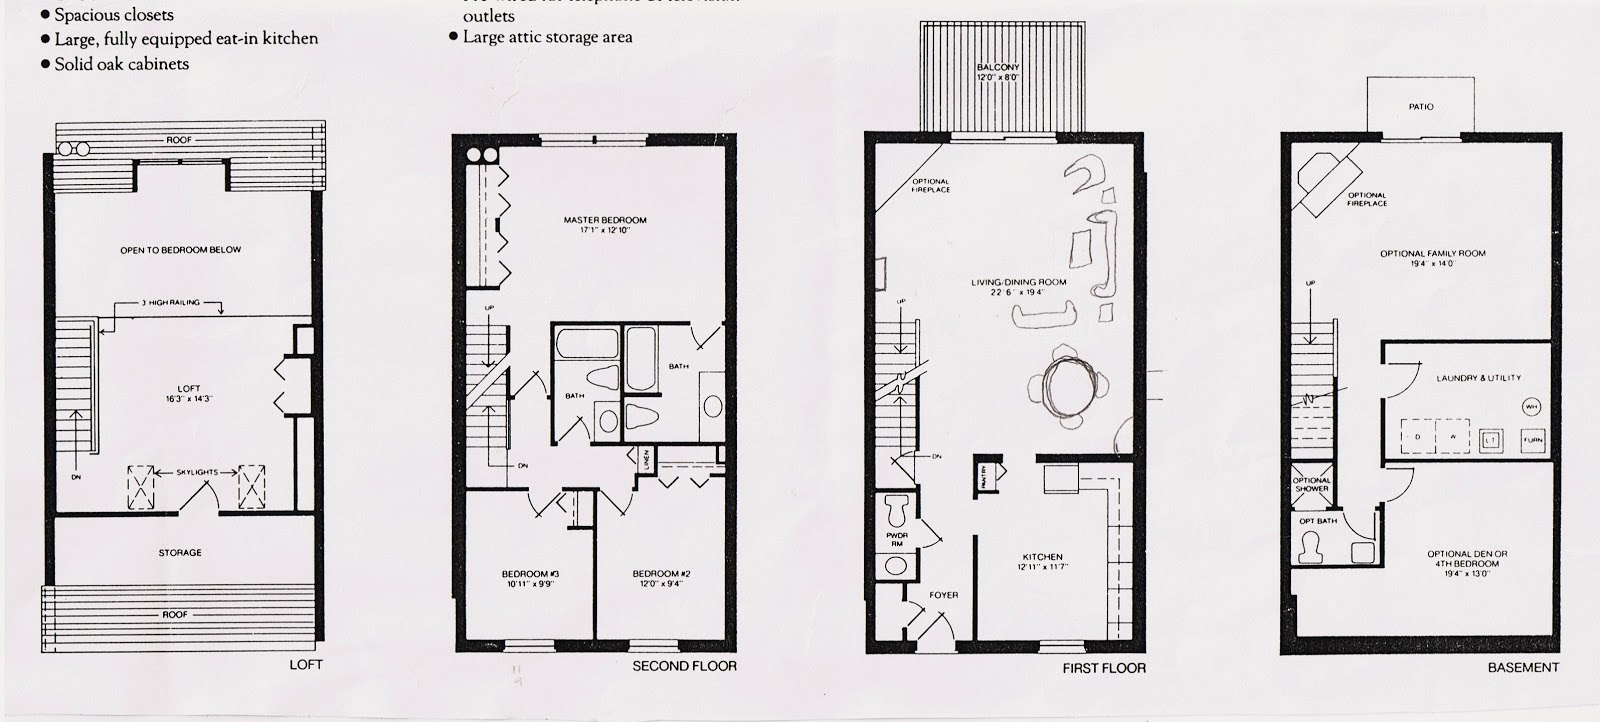 Bathroom floor plans for 7 x 10 home decorating for Bathroom design 12 x 8